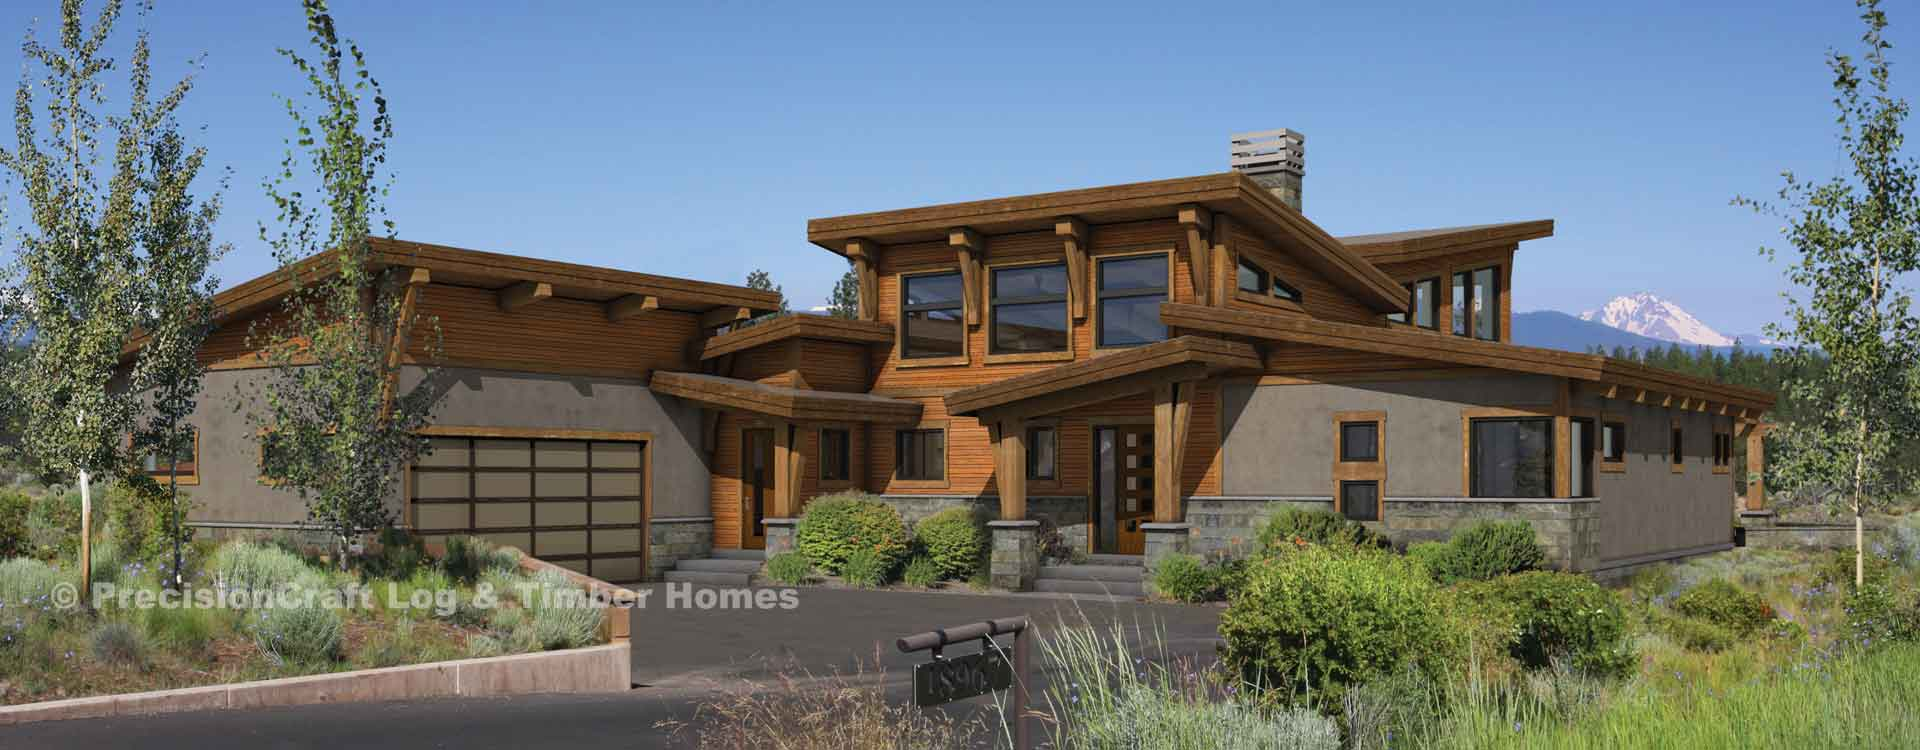 Small luxury mountain home plans house design plans for Luxury mountain home floor plans